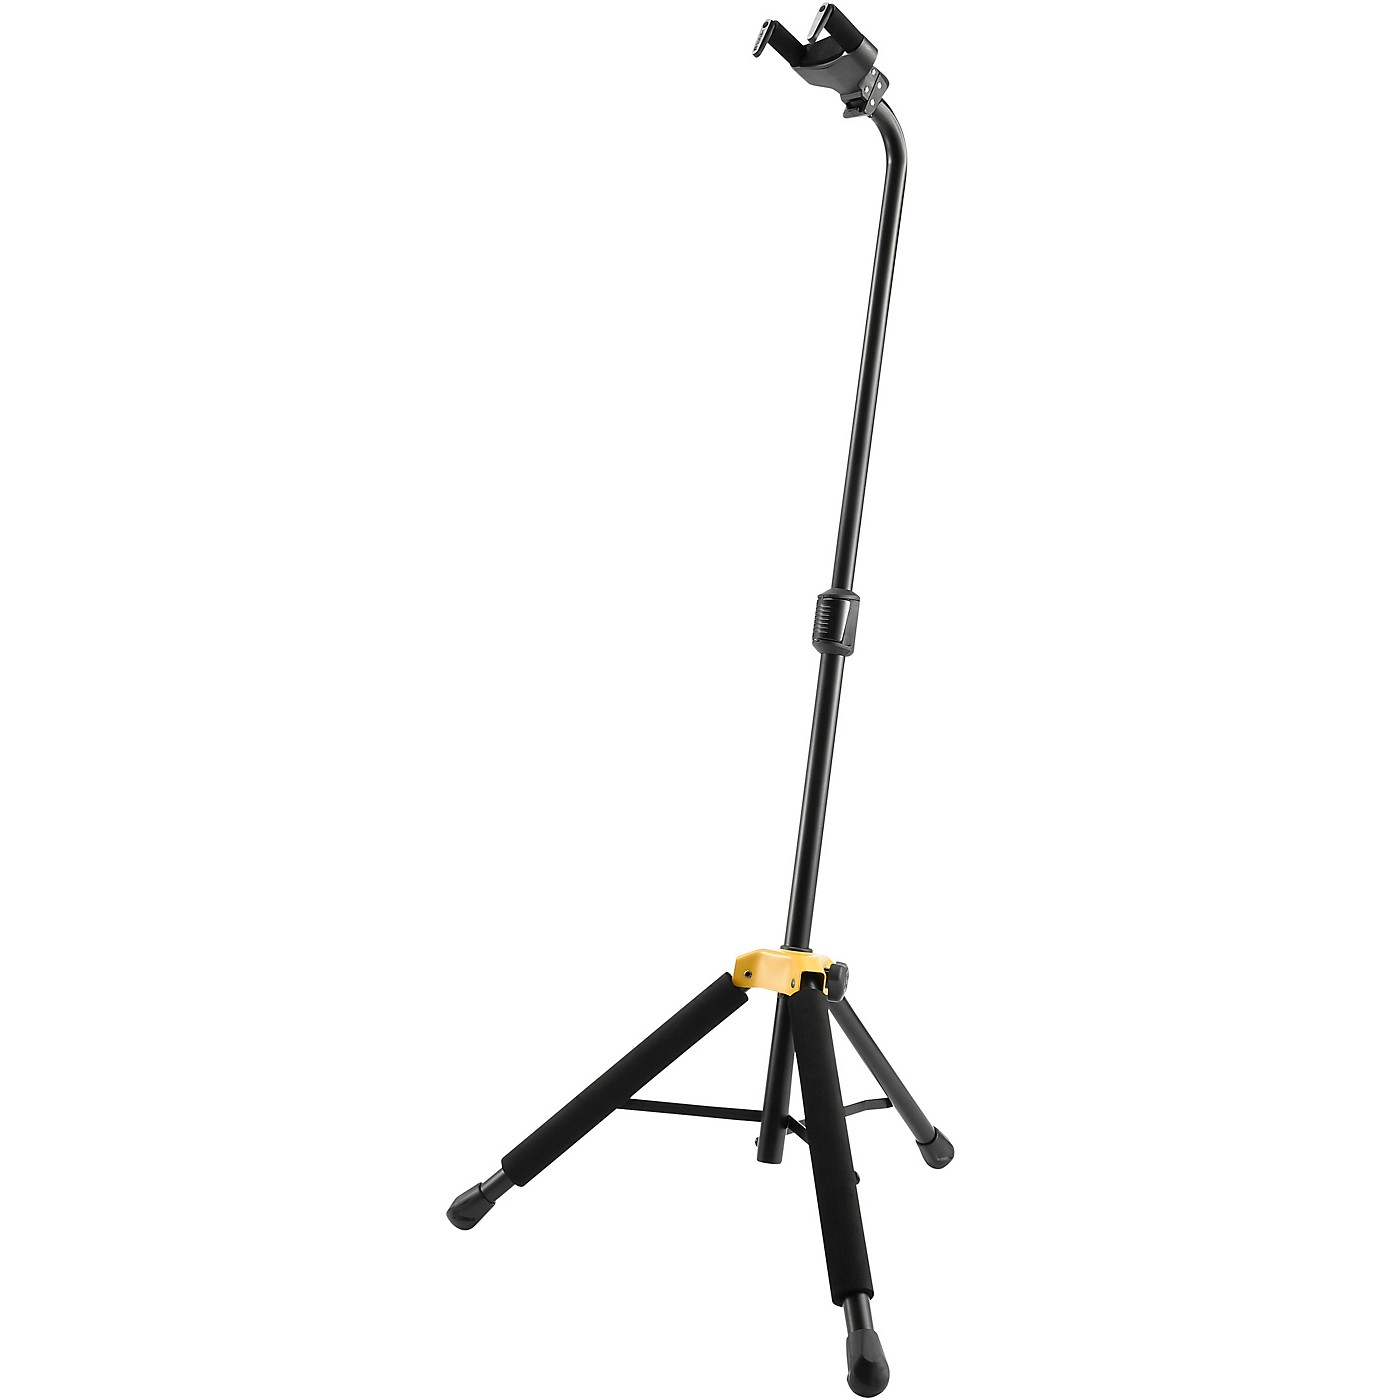 Hercules GS414B PLUS Auto Grip System (AGS) Single Guitar Stand thumbnail